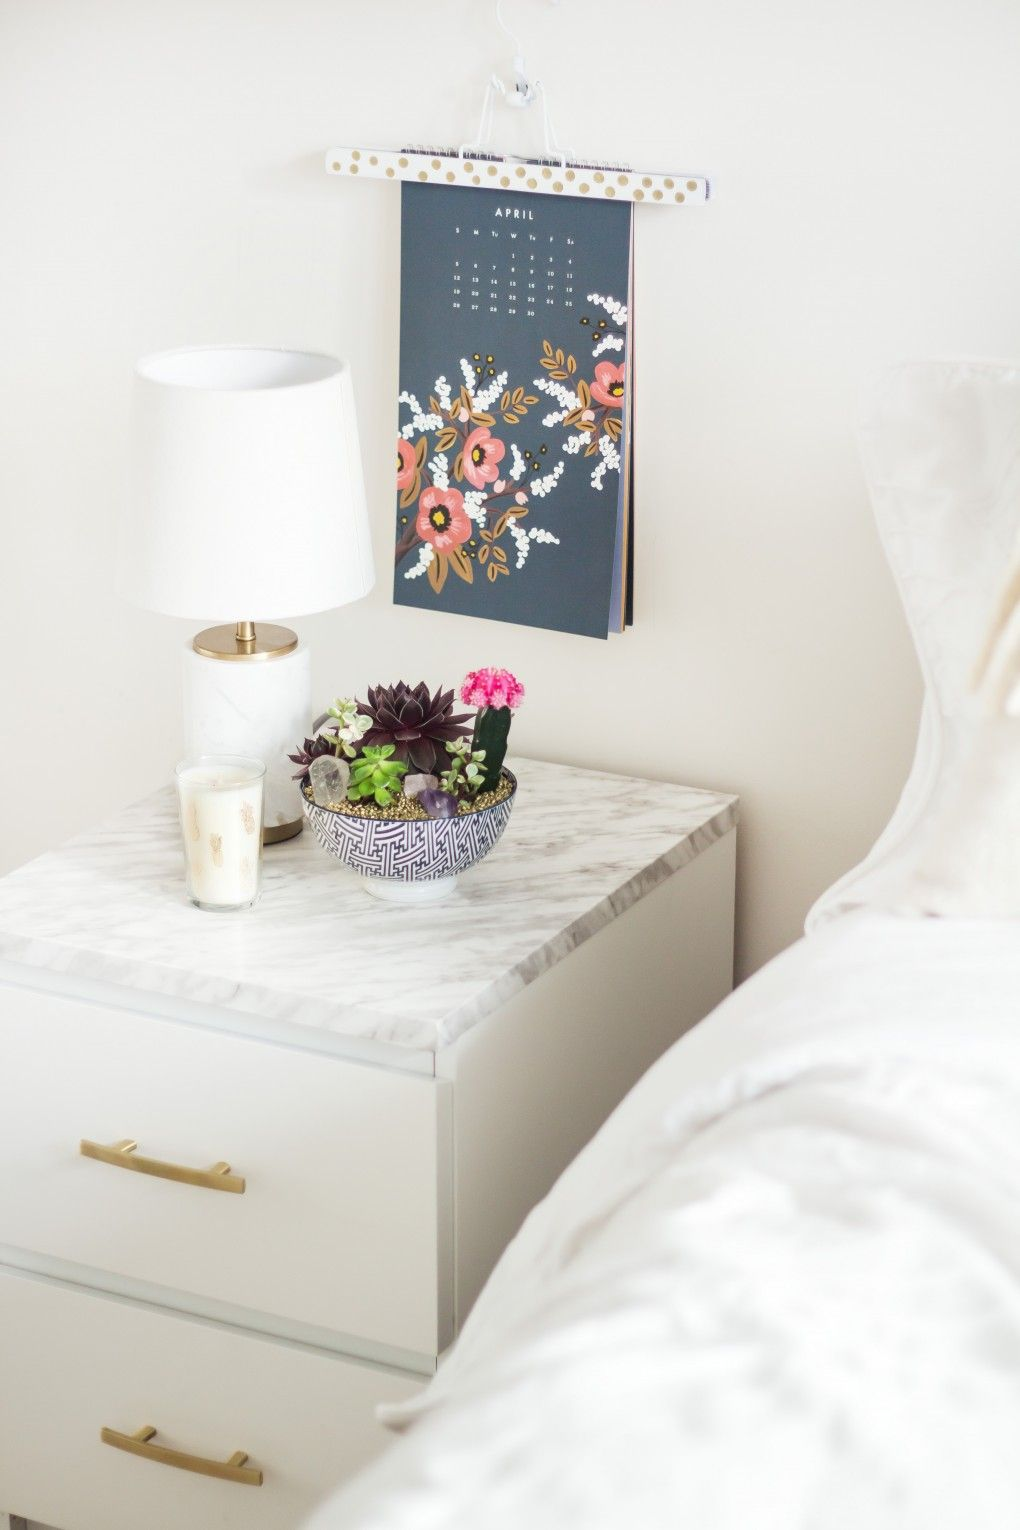 Ikea Malm End Table Diy The Blondielocks Life Style Ikea Nightstand Dorm Room Designs Ikea Diy